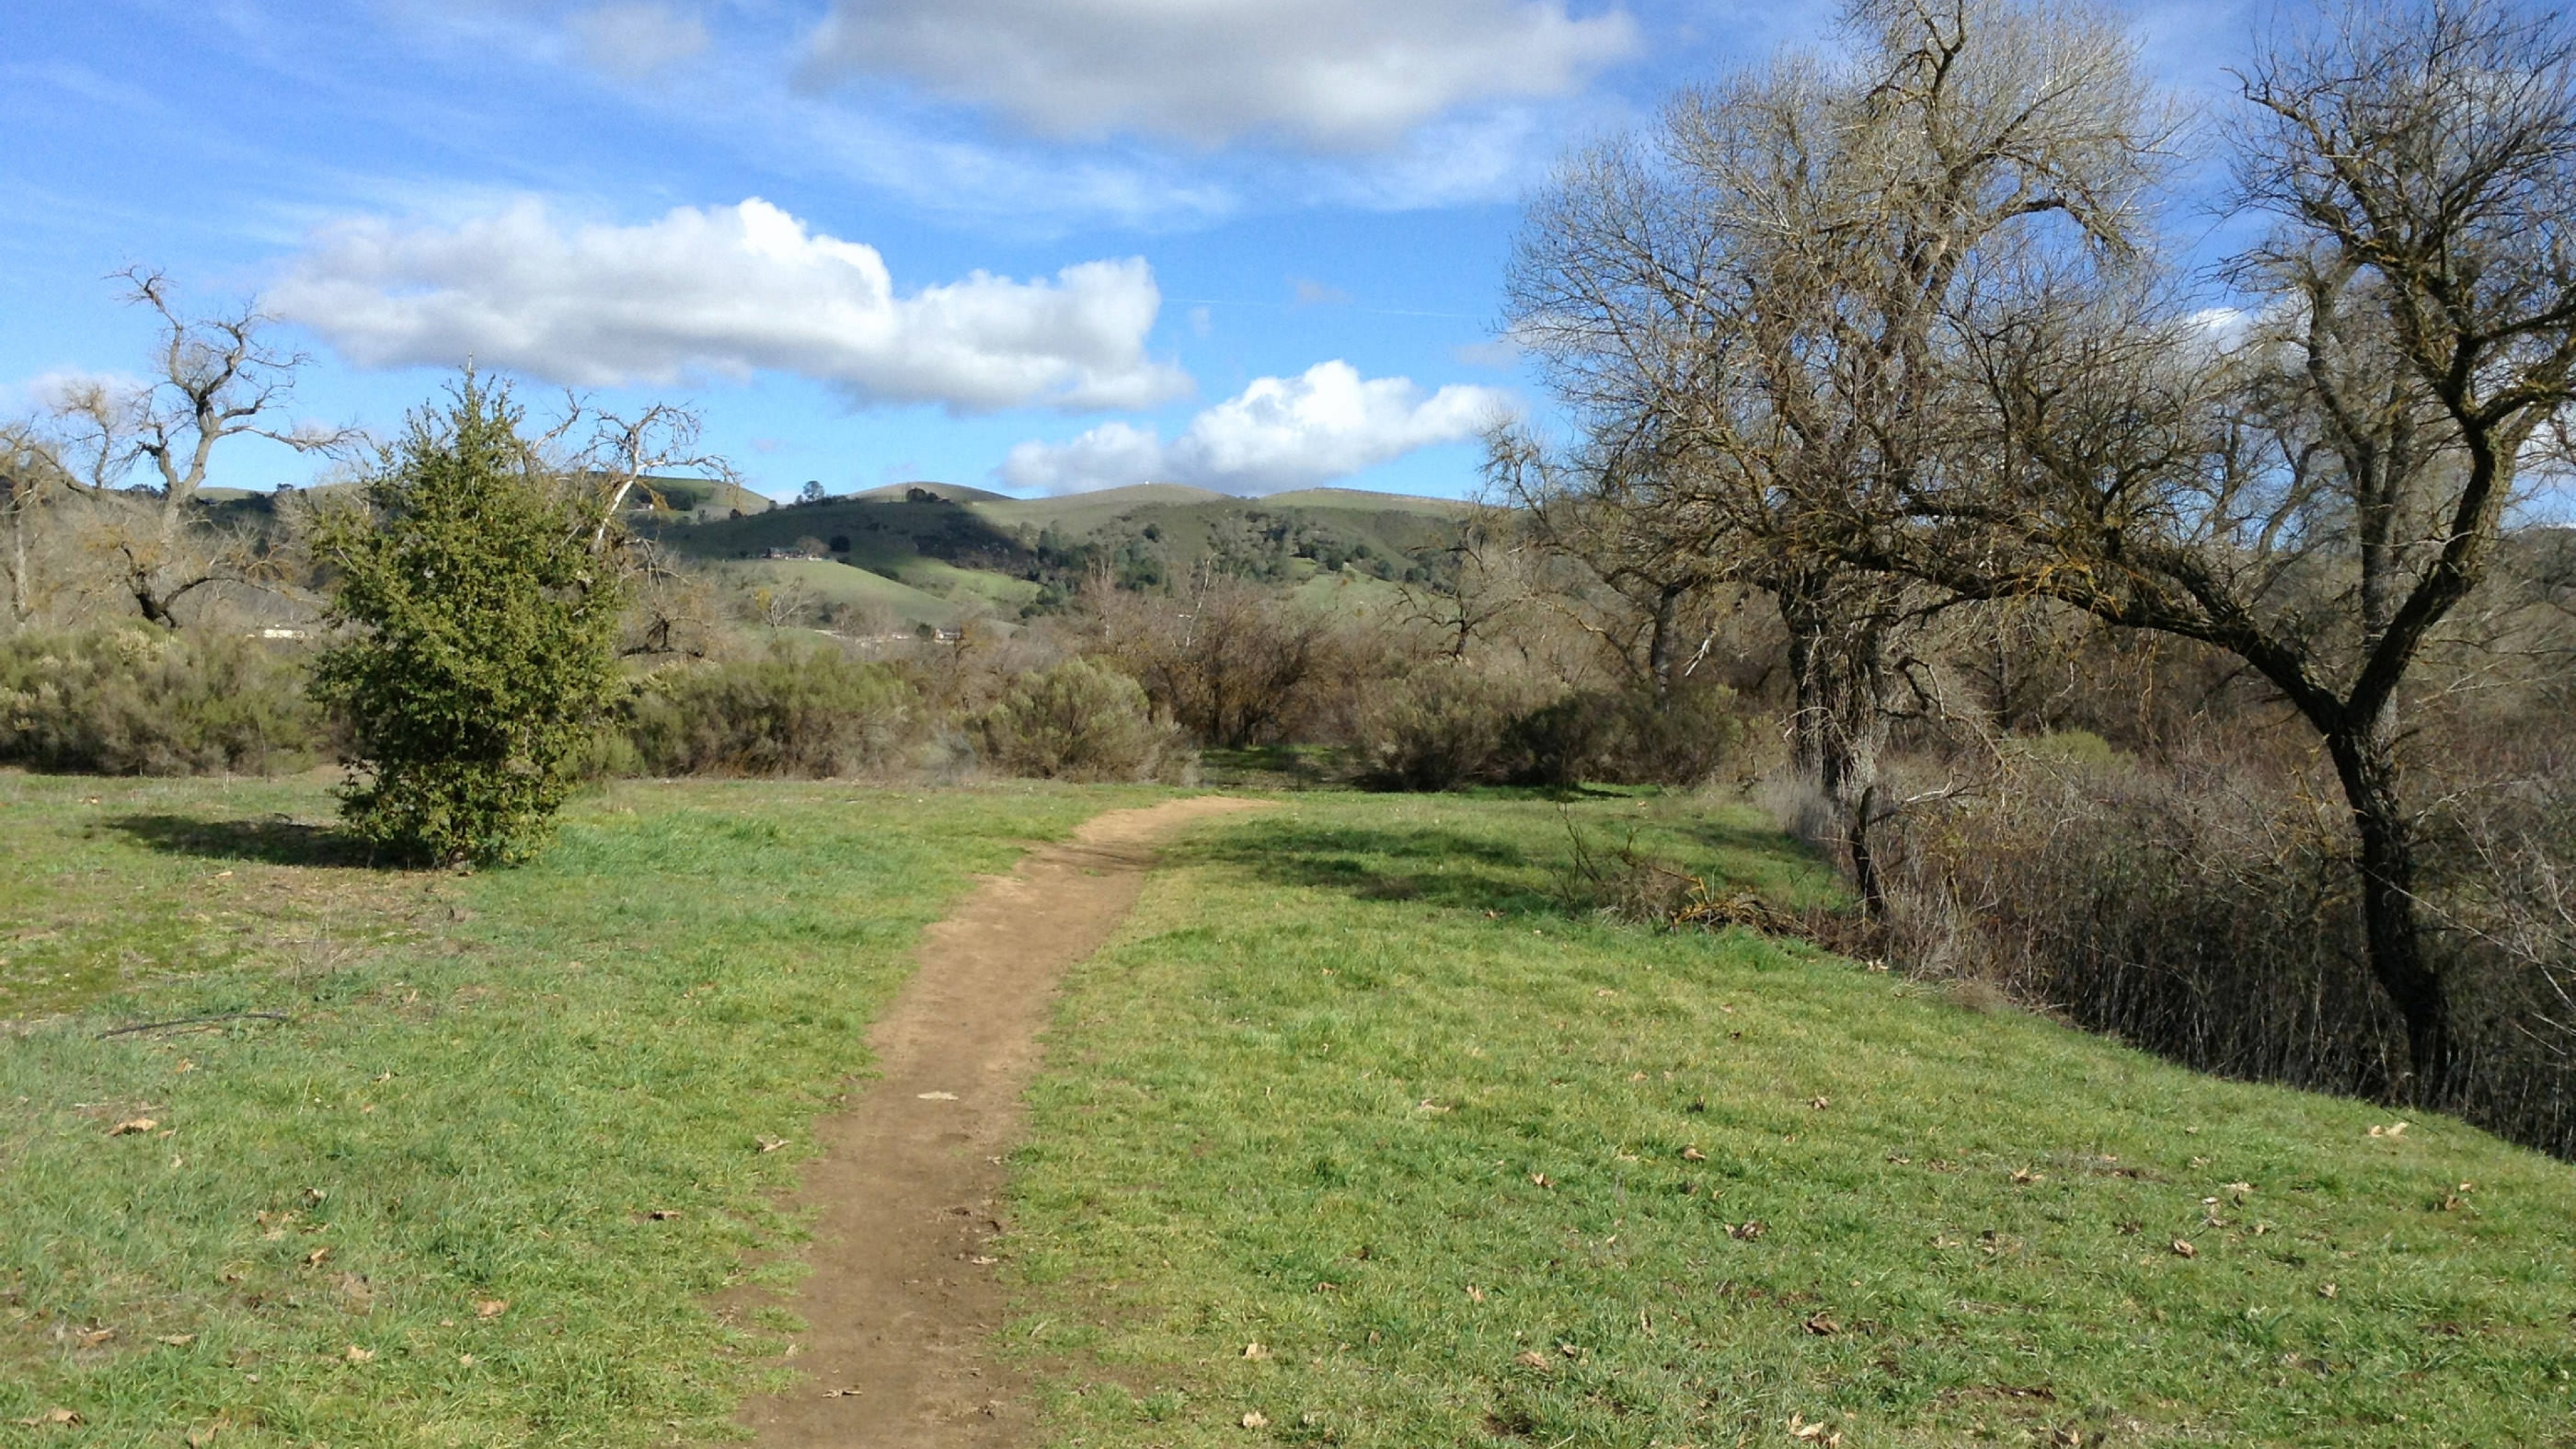 Worn path of the Juan Bautista de Anza National Historic Trail